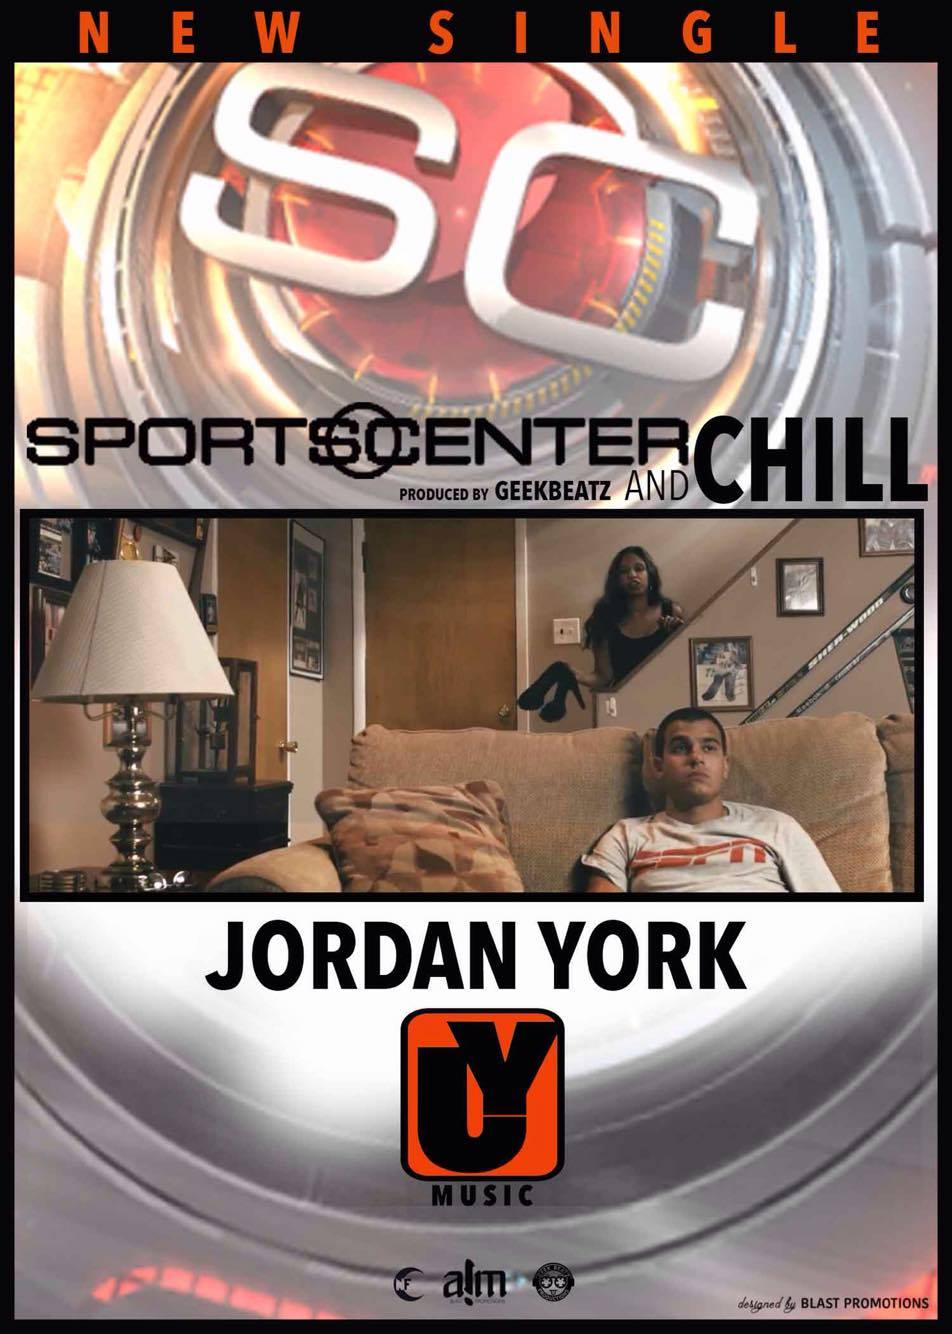 Jordan York - SportsCenter and Chill (Music Video)